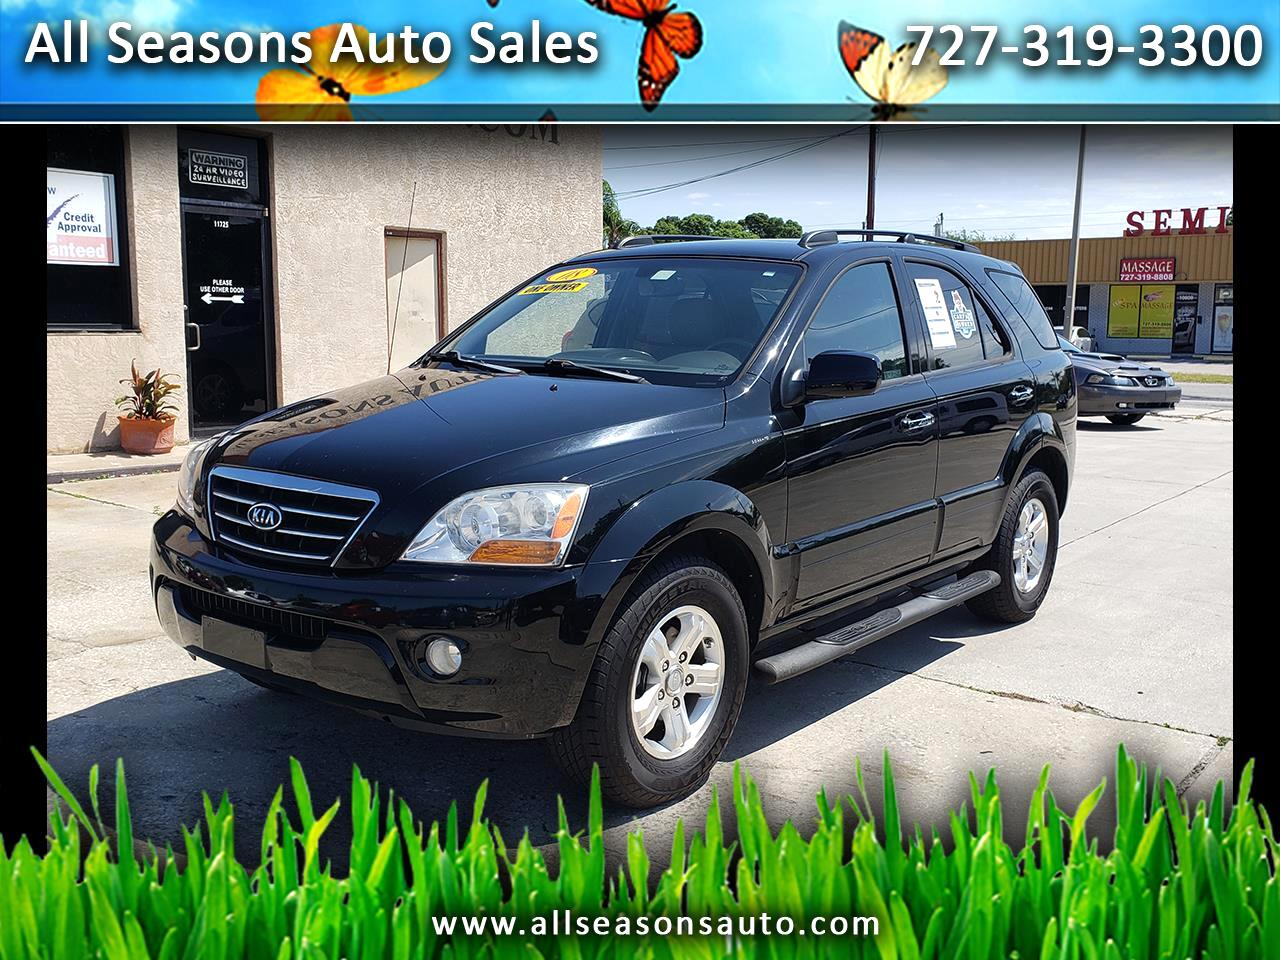 Used Cars For Sale Largo Fl 33778 All Seasons Auto Sales